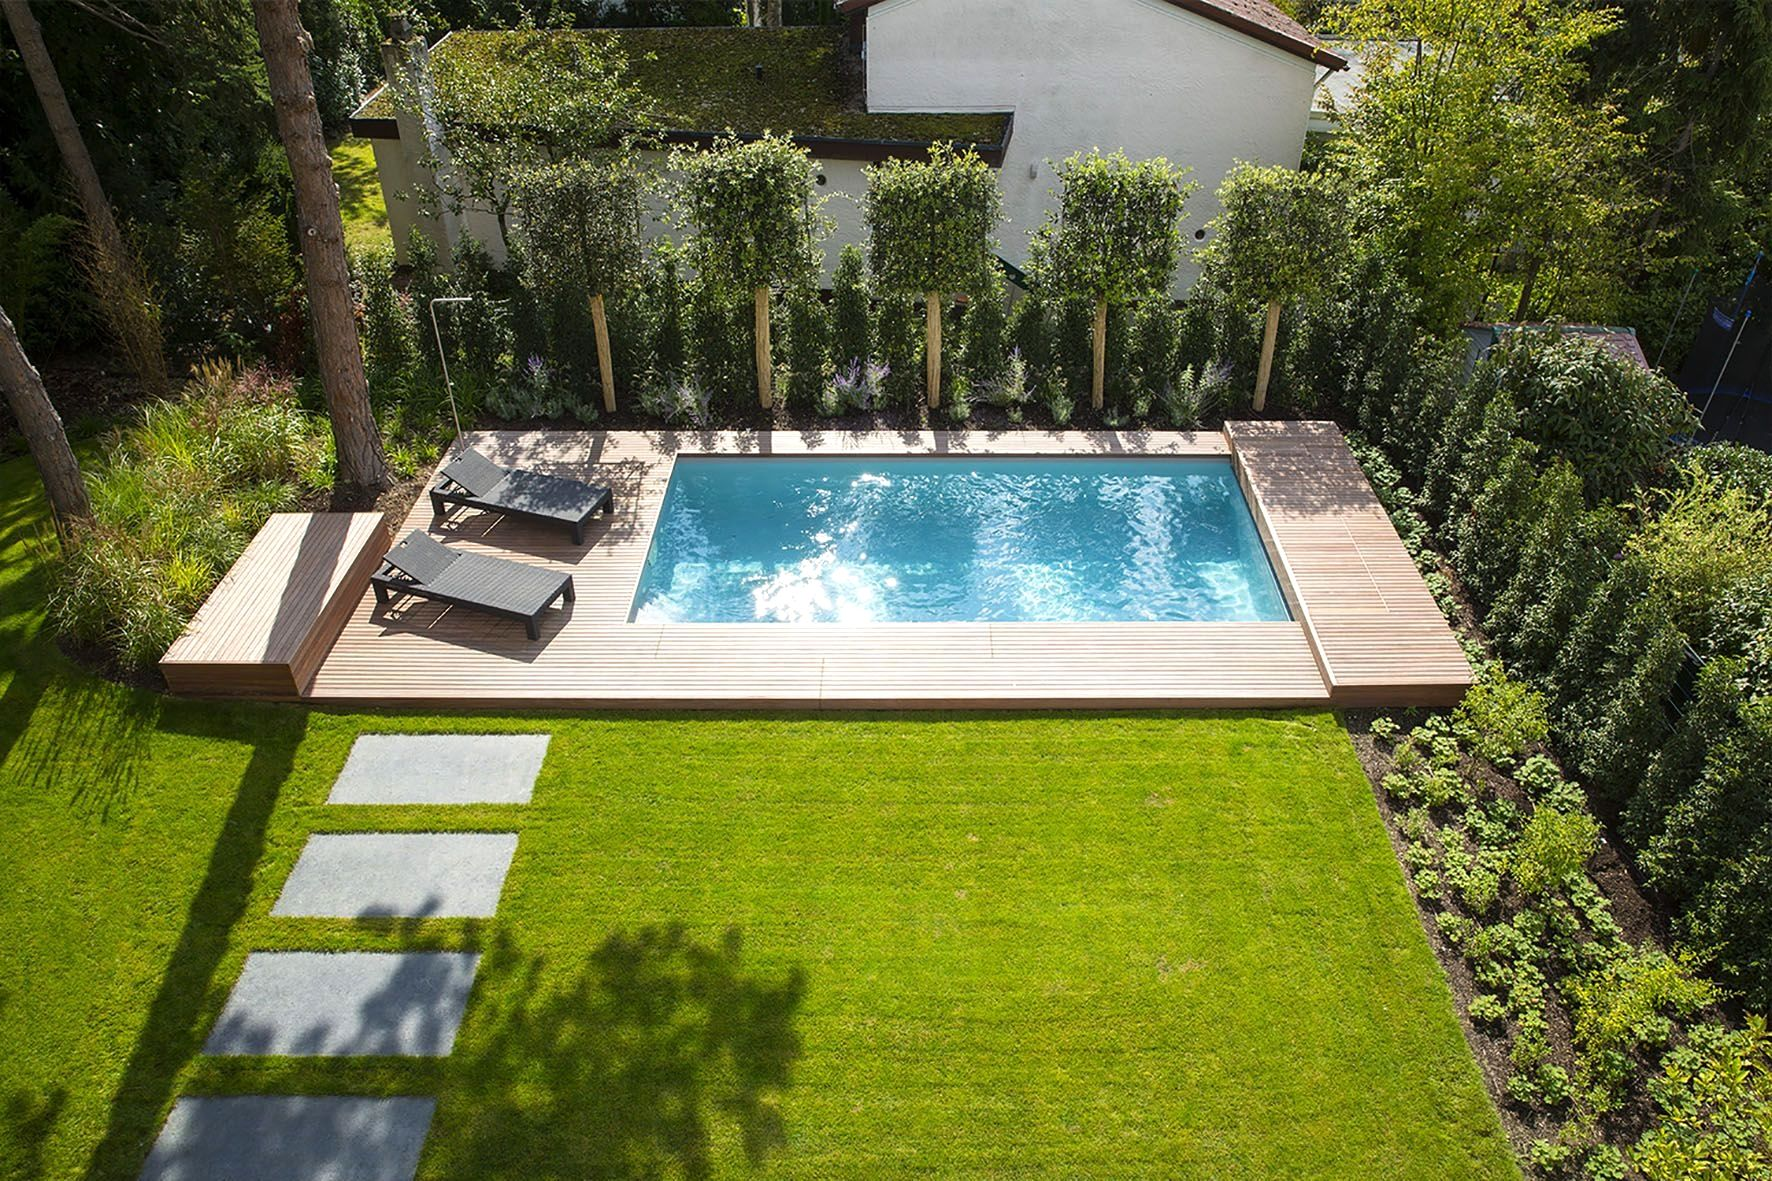 Backyard design ideas on a budget backyardideas lap - Backyard pool ideas on a budget ...